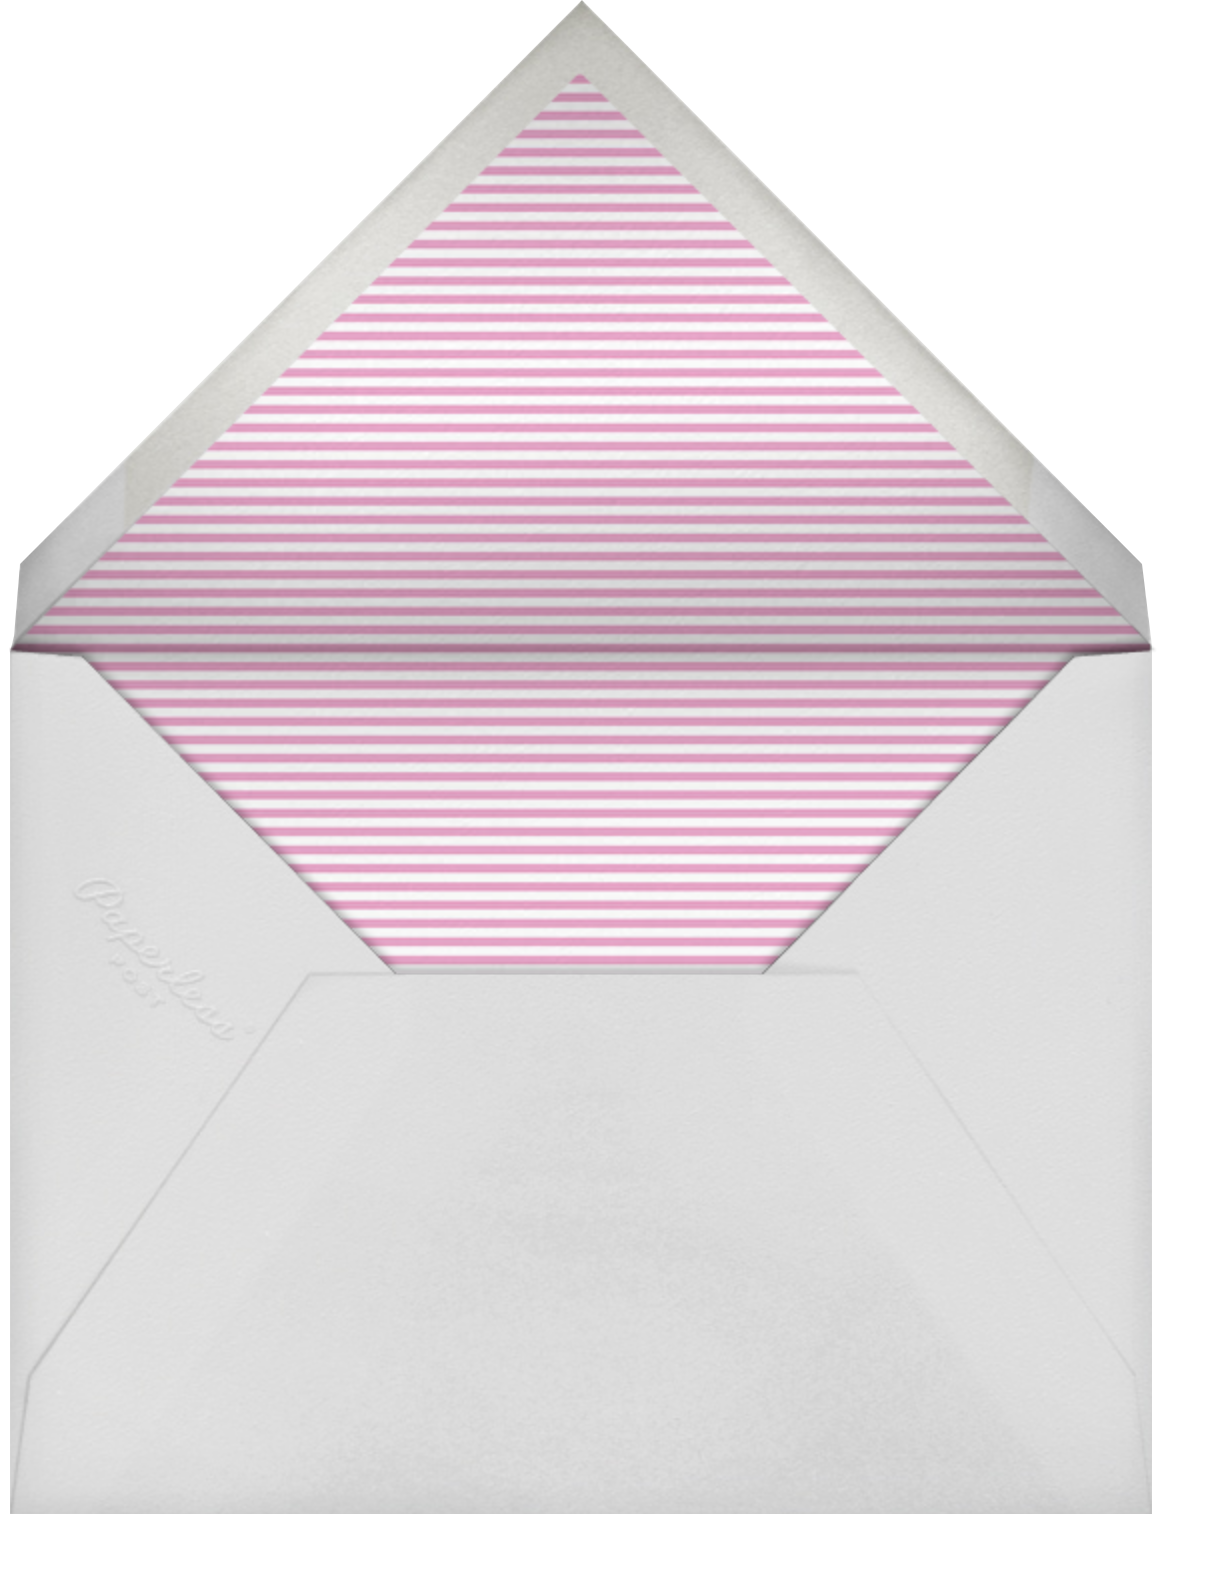 Field Day - Little Cube - Mother's Day - envelope back